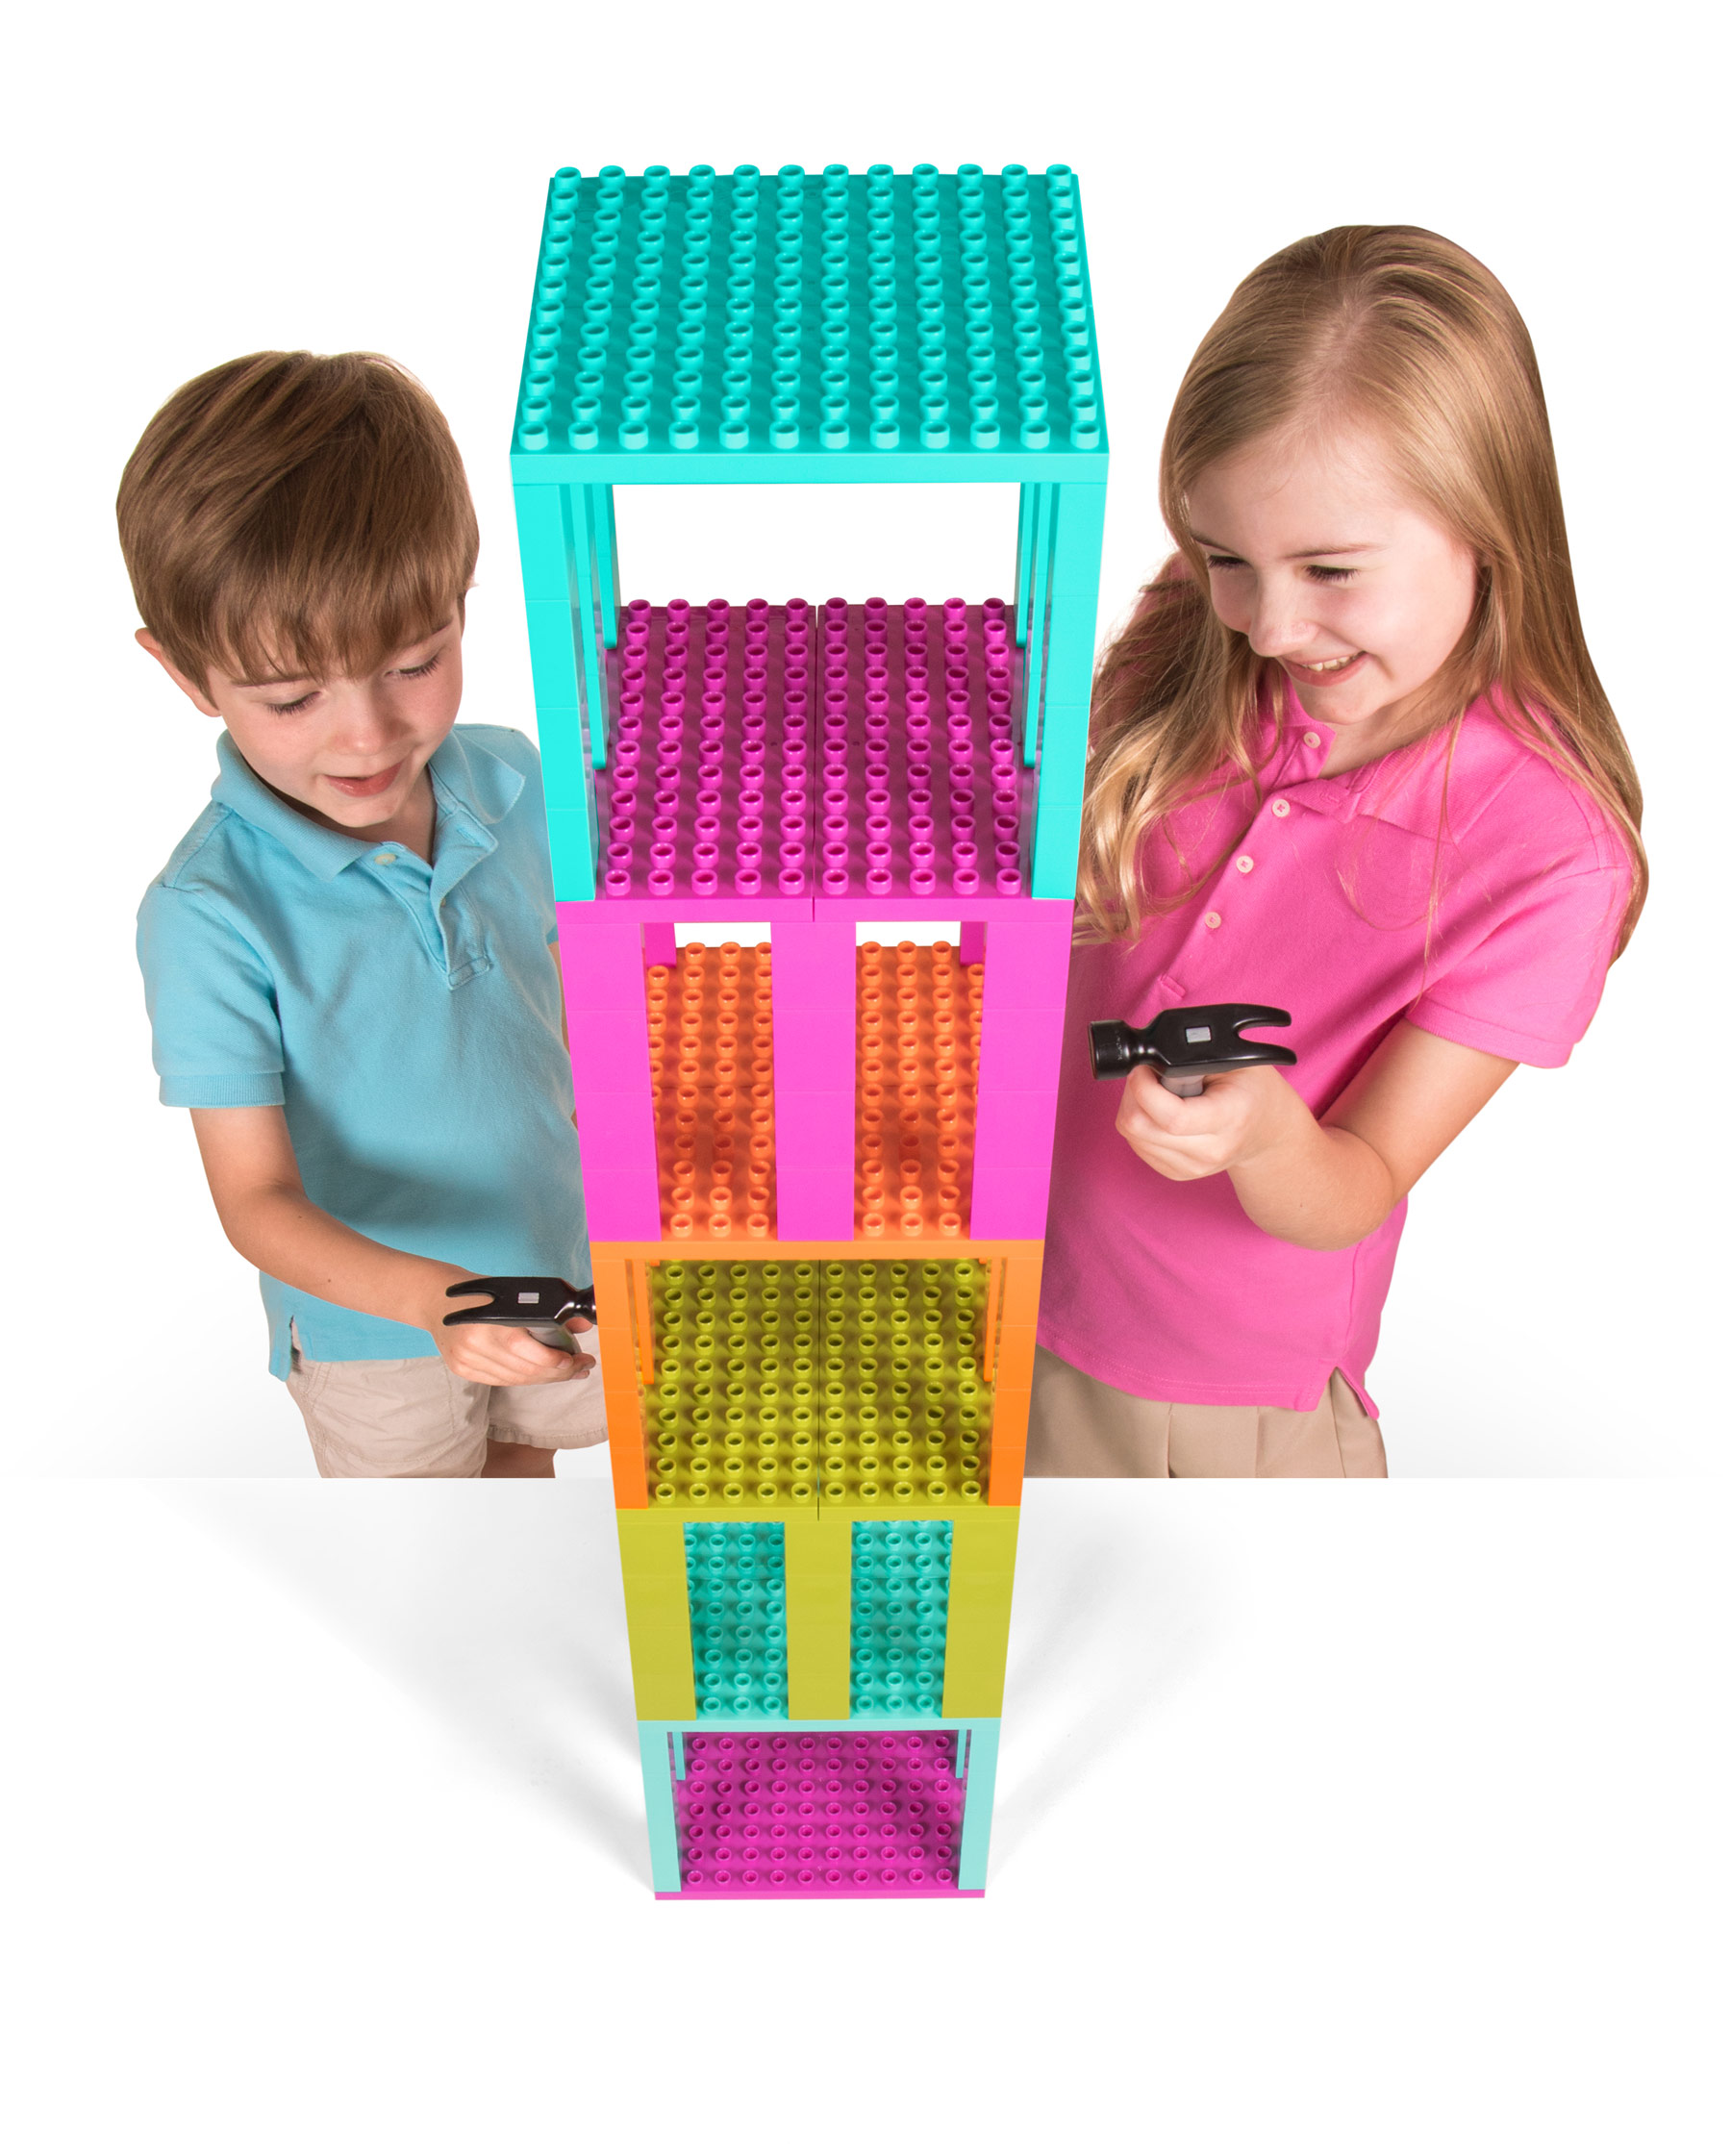 Boy and girl playing with Strictly Briks Brik Buster tower game